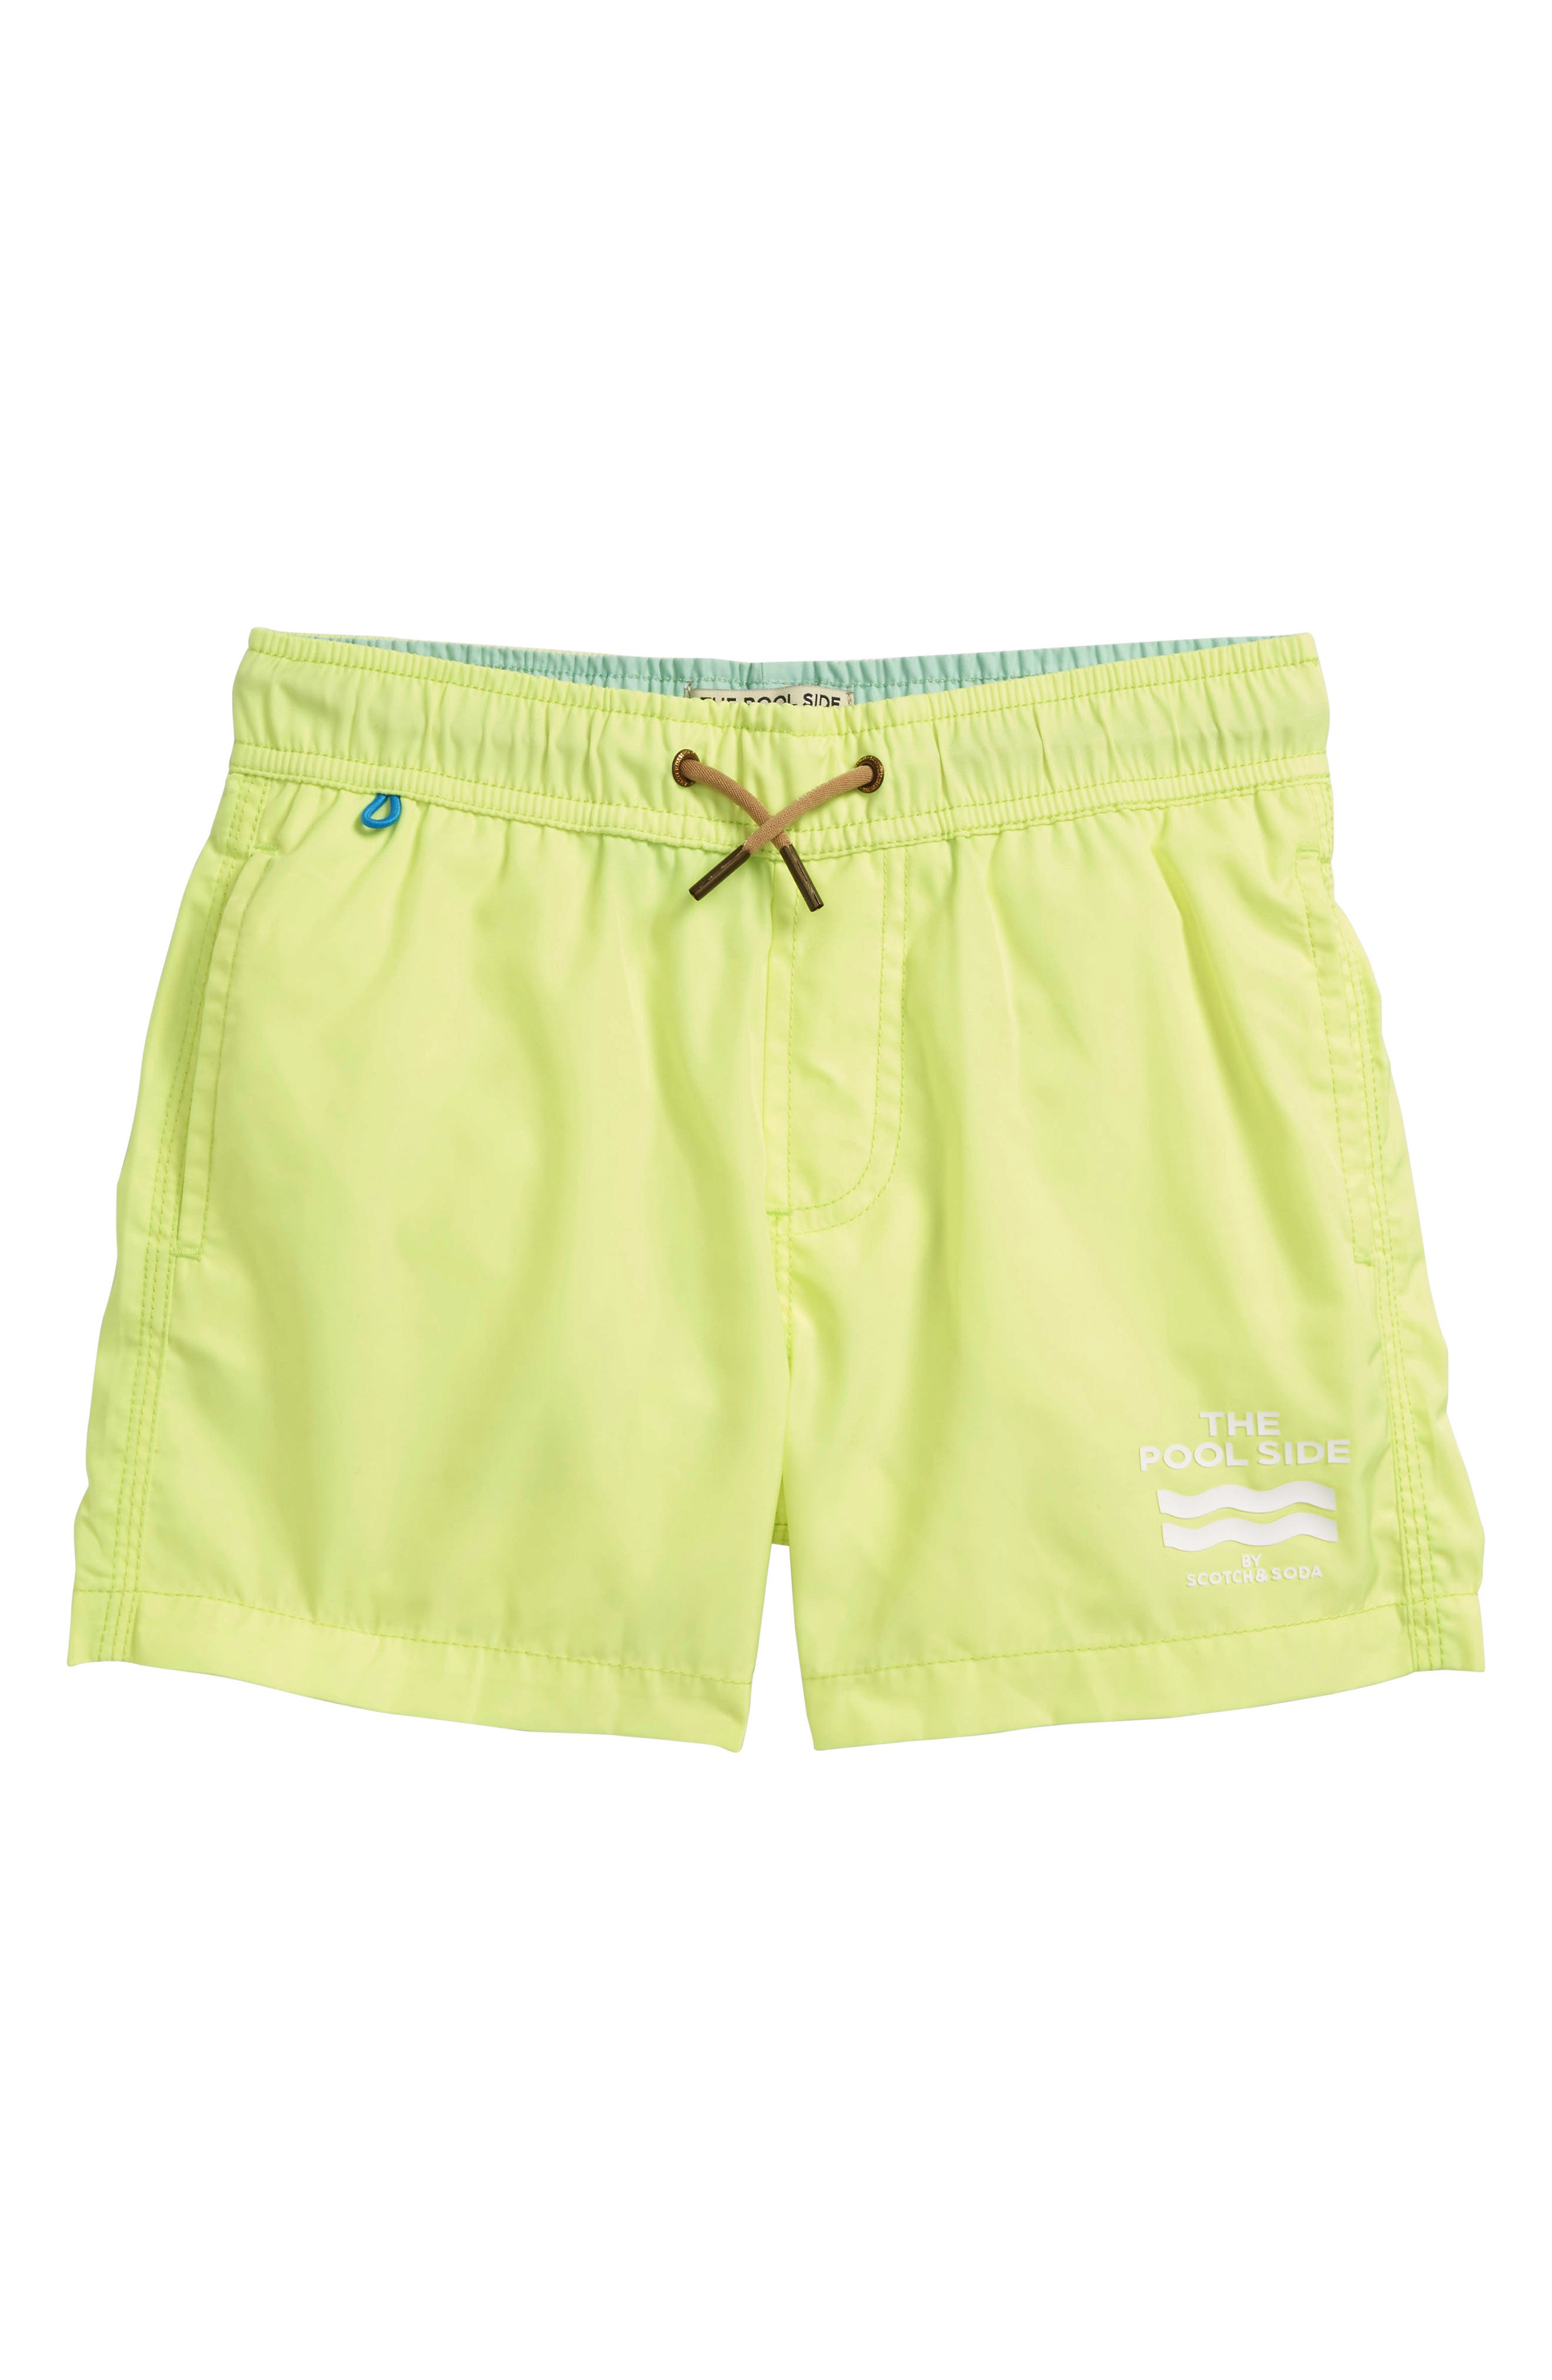 Swim Trunks,                             Main thumbnail 1, color,                             Citrine